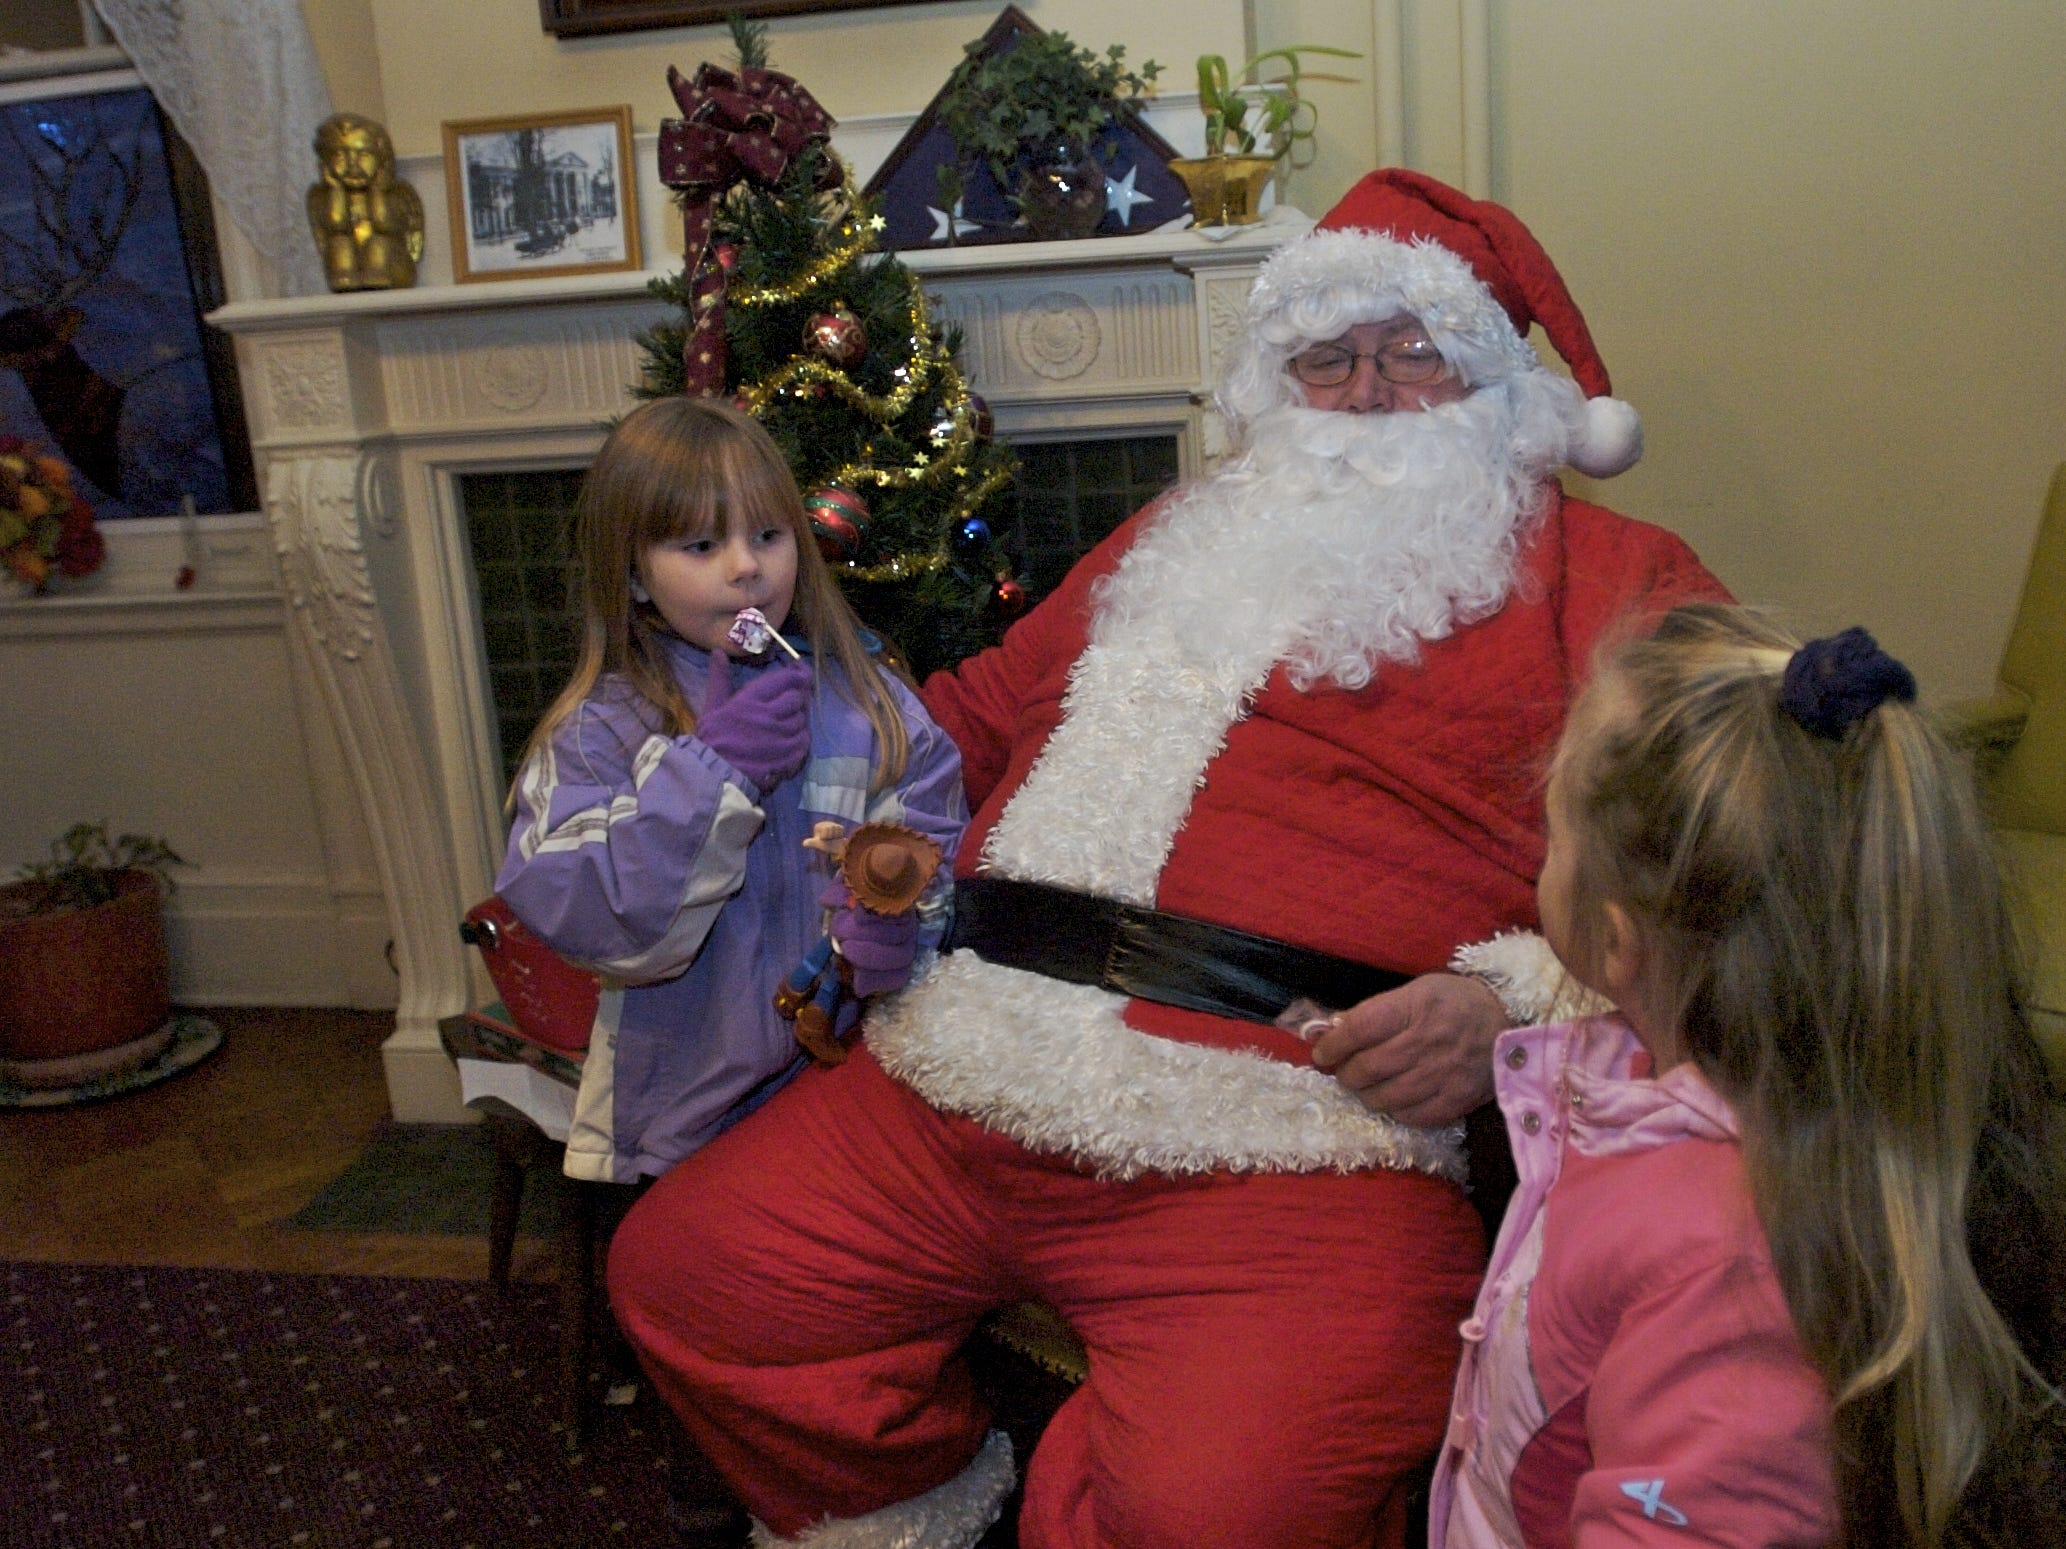 Santa Claus visits with best friends Trinity Brewster, left, and Shannon McMahon, both four-year-olds from the Town of Maine, for the annual Lights on the River event in Owego in 2010.